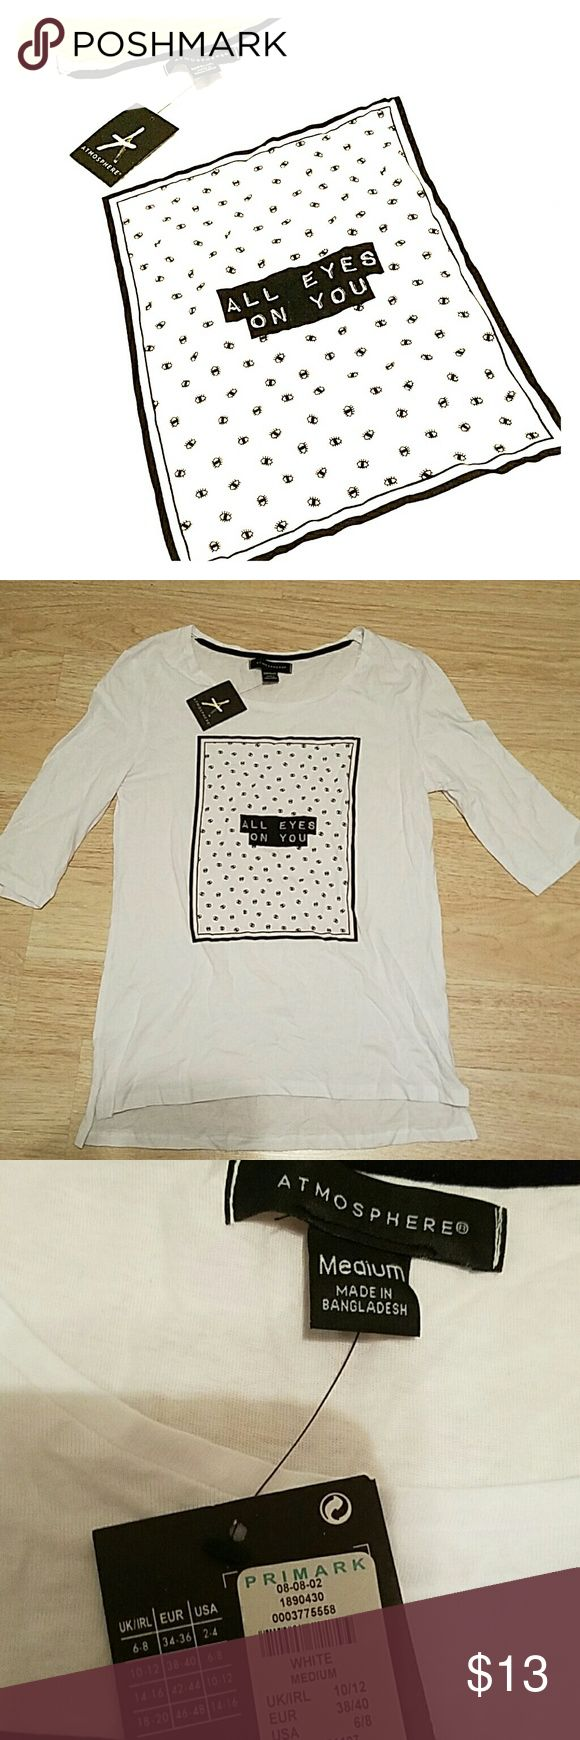 NWT Graphic Half Sleeve Size M, brand new with original tags. Adorable! Atmosphere by Primark Tops Tees - Long Sleeve